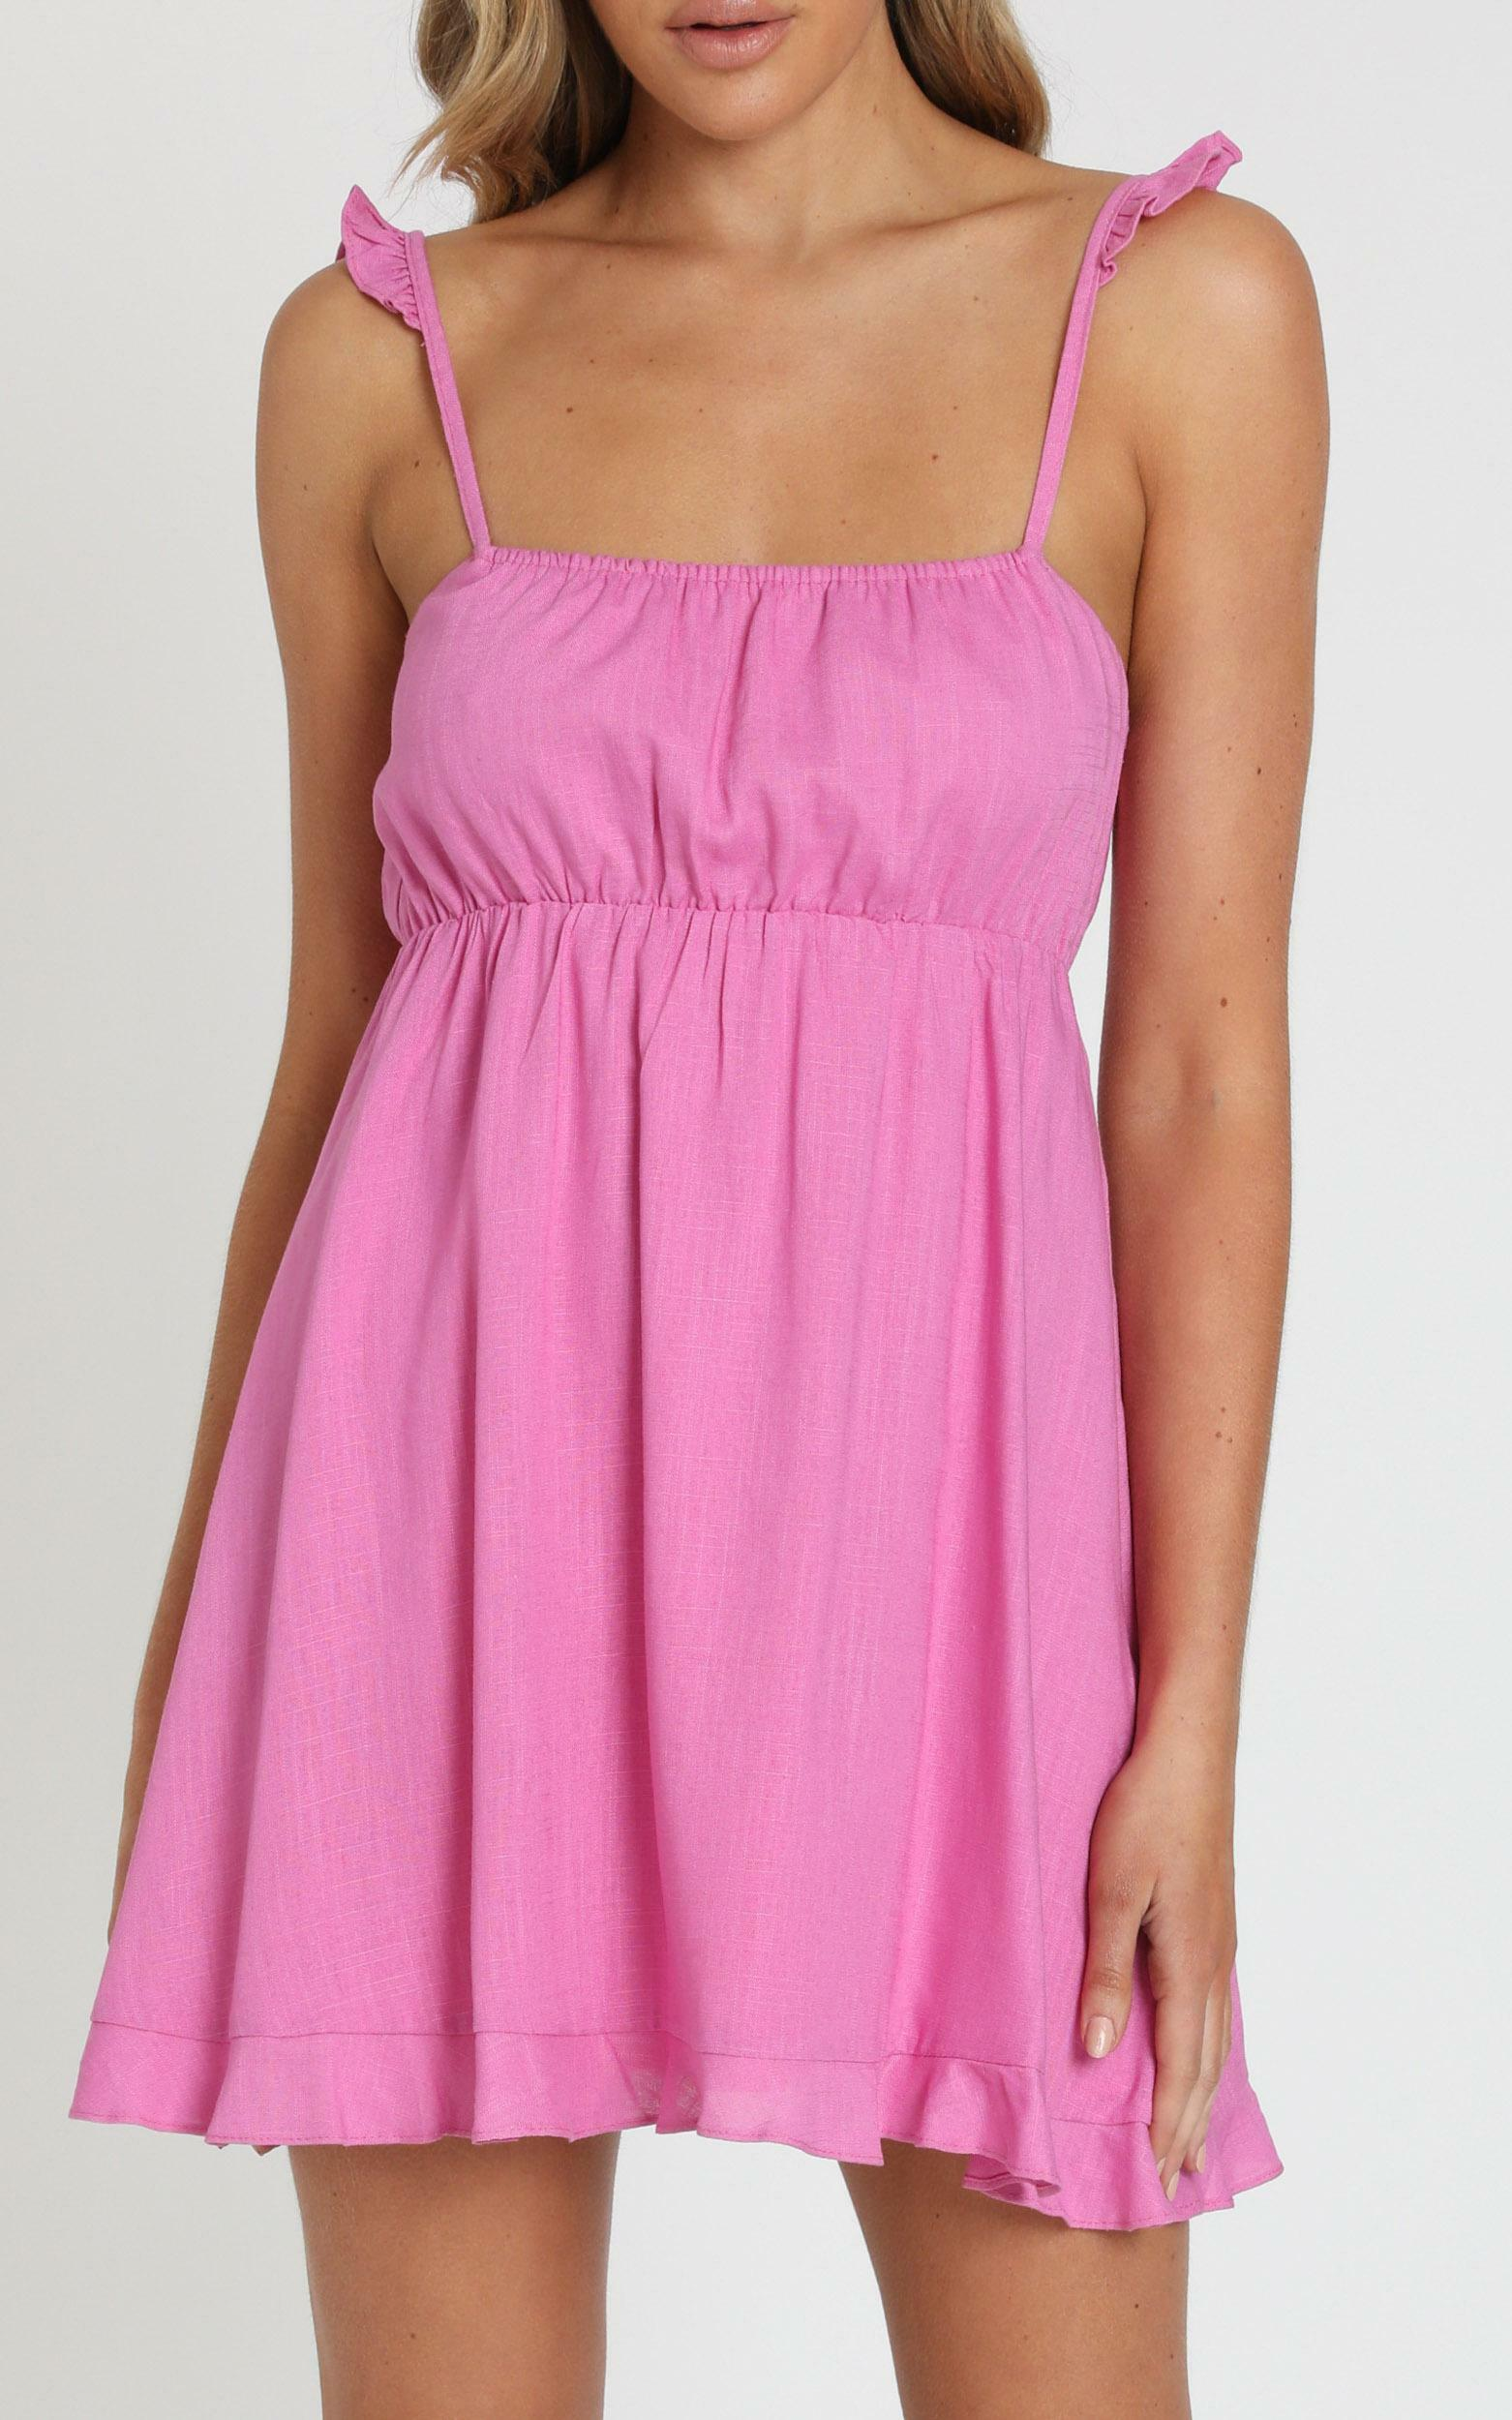 Wild Beauty Dress in pink - 20 (XXXXL), Pink, hi-res image number null